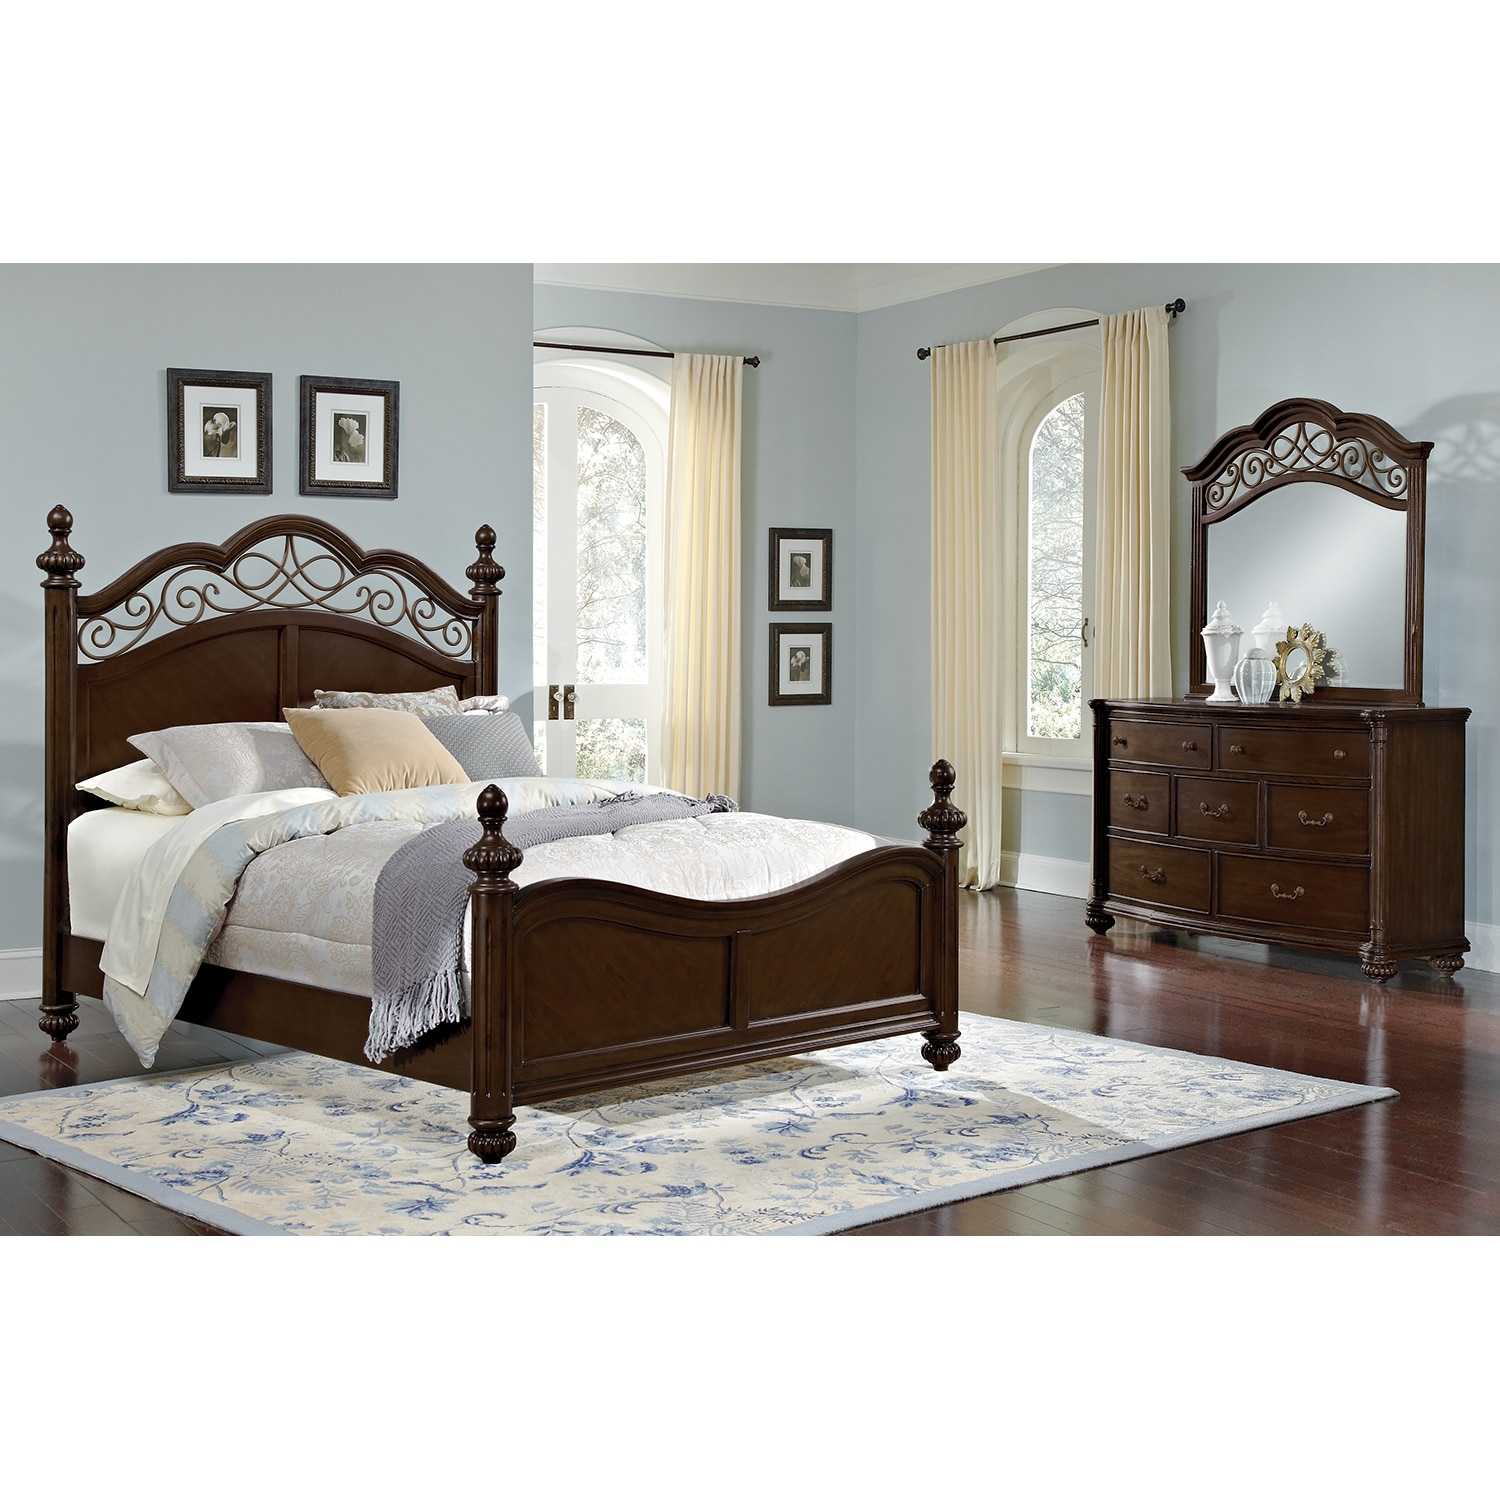 Derbyshire Bedroom 5 Pc King Value City Furniture